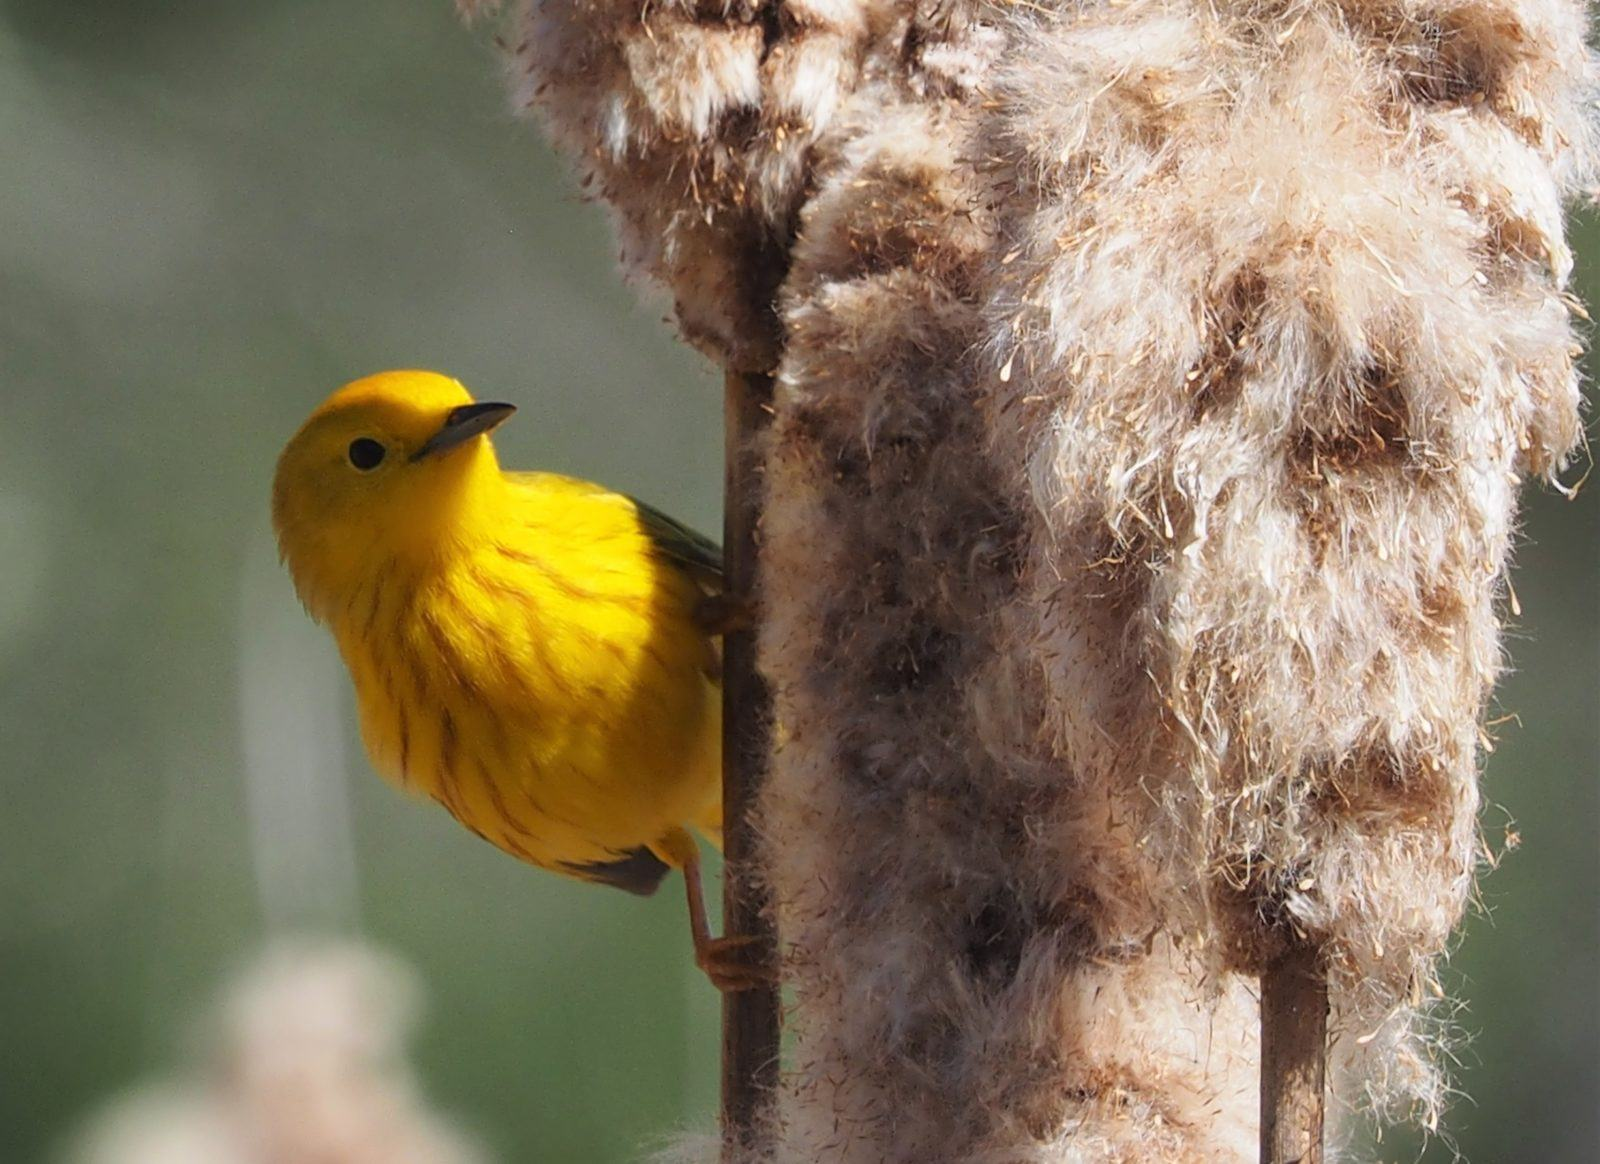 genetic mapping shows migratory birds' vulnerability to climate change